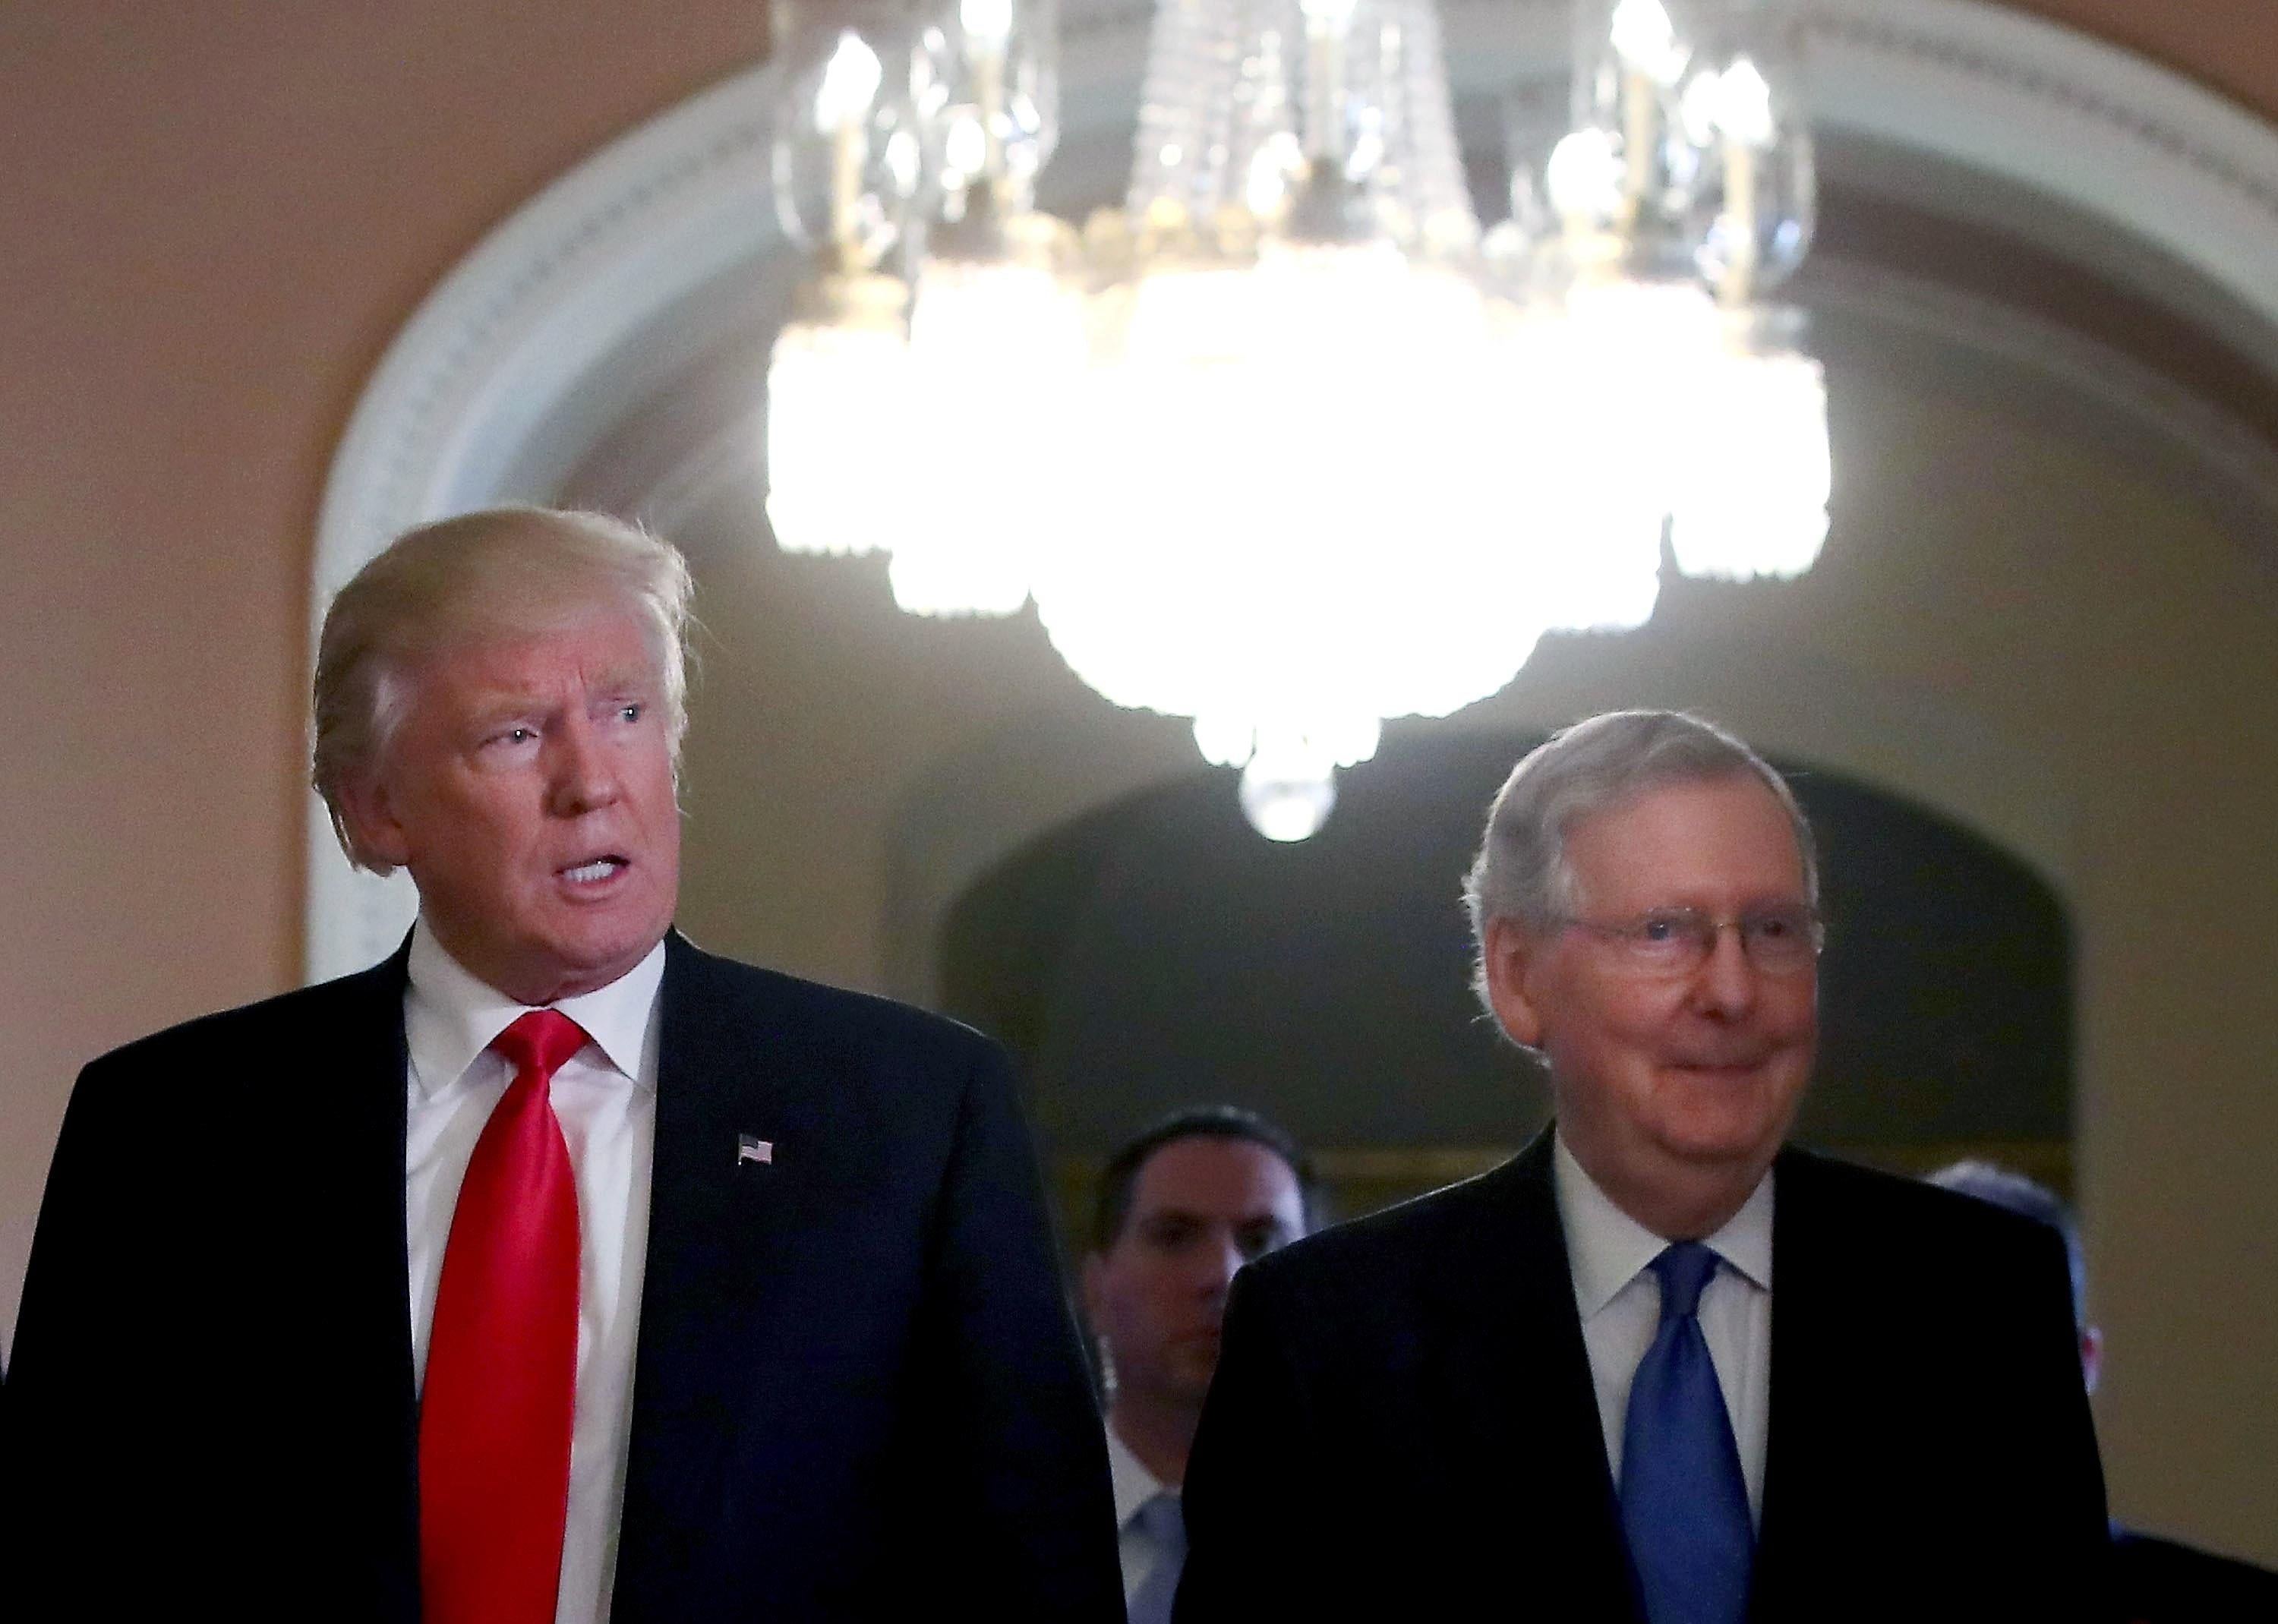 Donald Trump and Mitch McConnell in the U.S. Capitol.